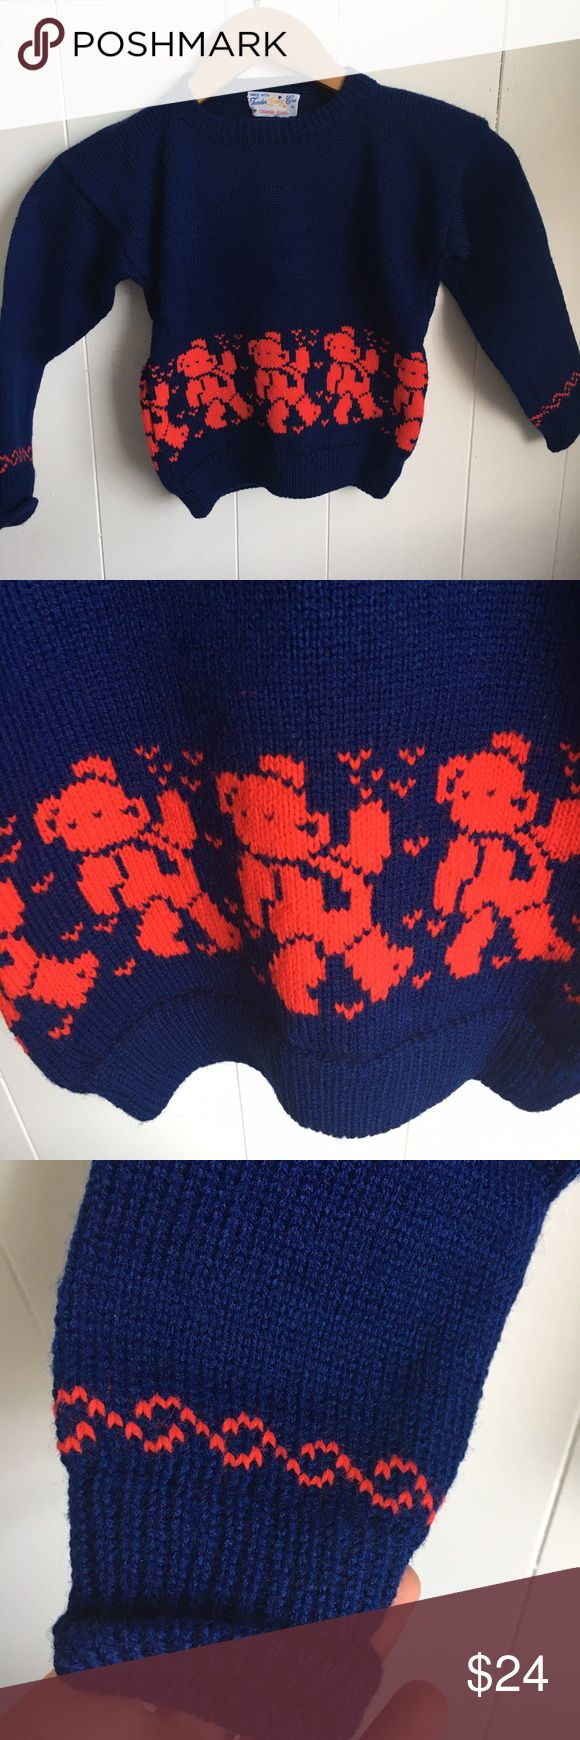 """Hand knit vintage navy red teddy bear sweater kids Pit to pit is 15"""". Sleeve 13"""". Back length 16"""". Vintage Shirts & Tops Sweaters"""